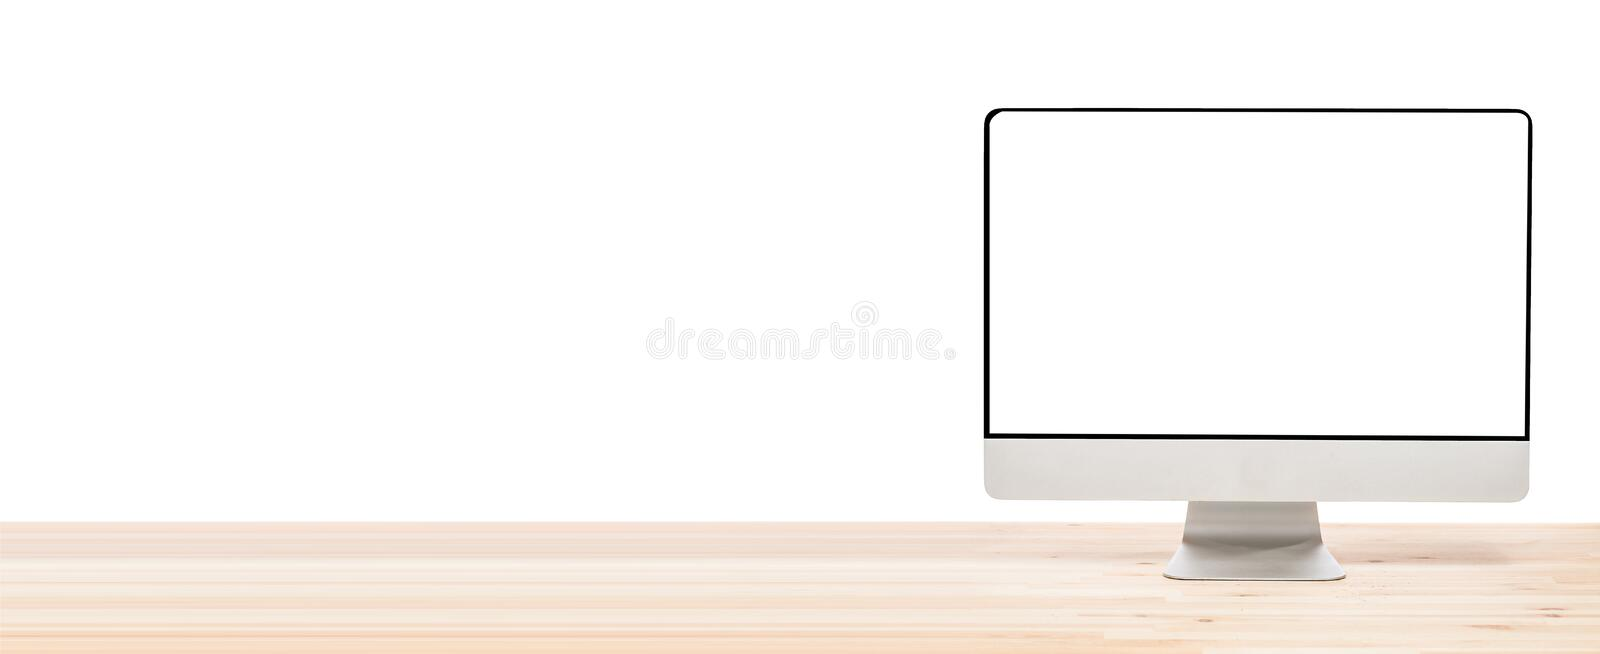 Conceptual workspace or business concept. Big computer monitor display with blank white screen on light wooden table. Isolated stock image